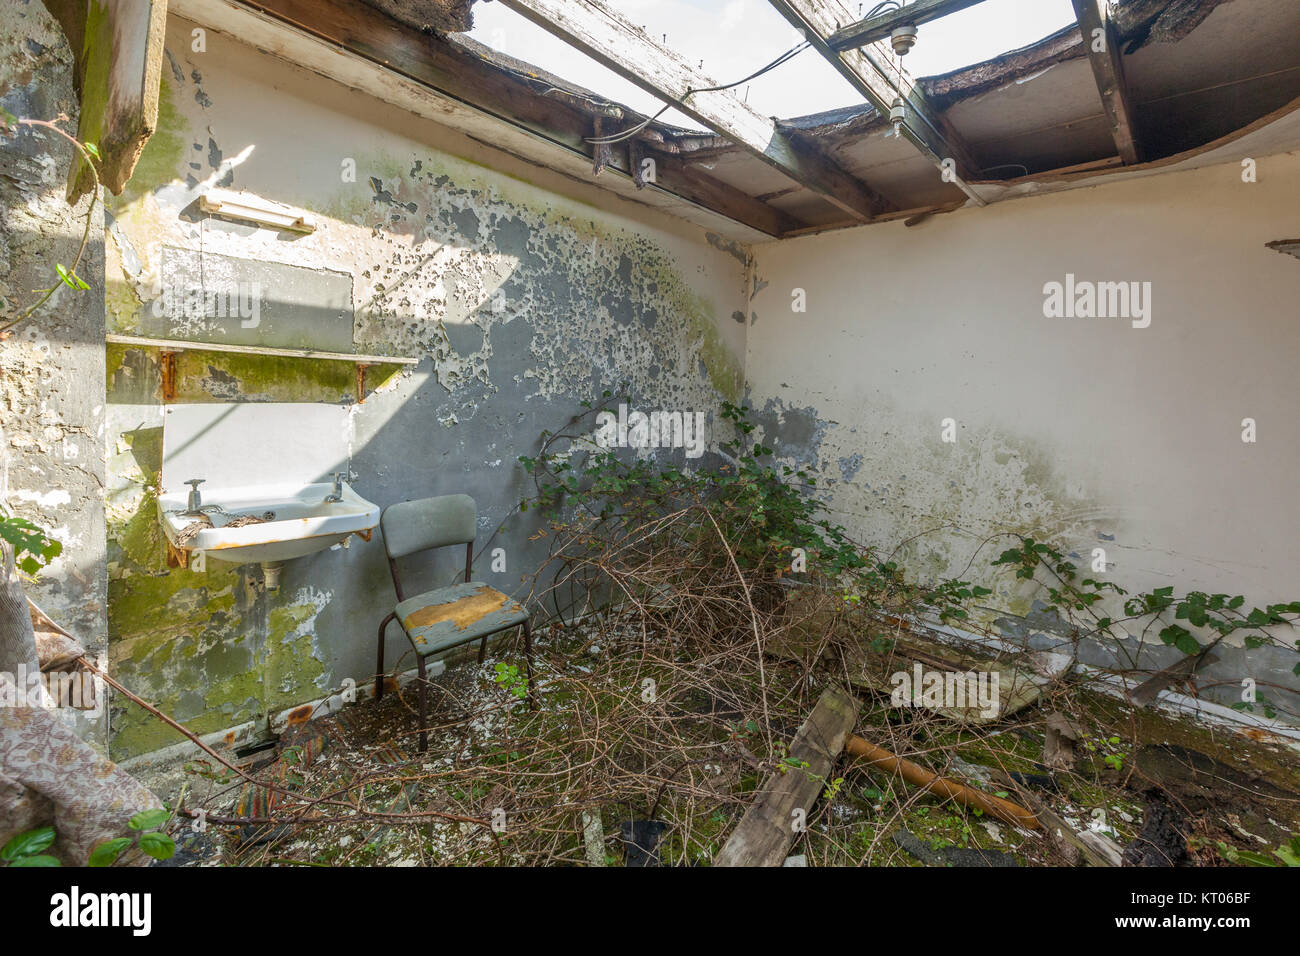 Isle Of Wight Deserted Stock Photos Isle Of Wight Deserted Stock Images Alamy